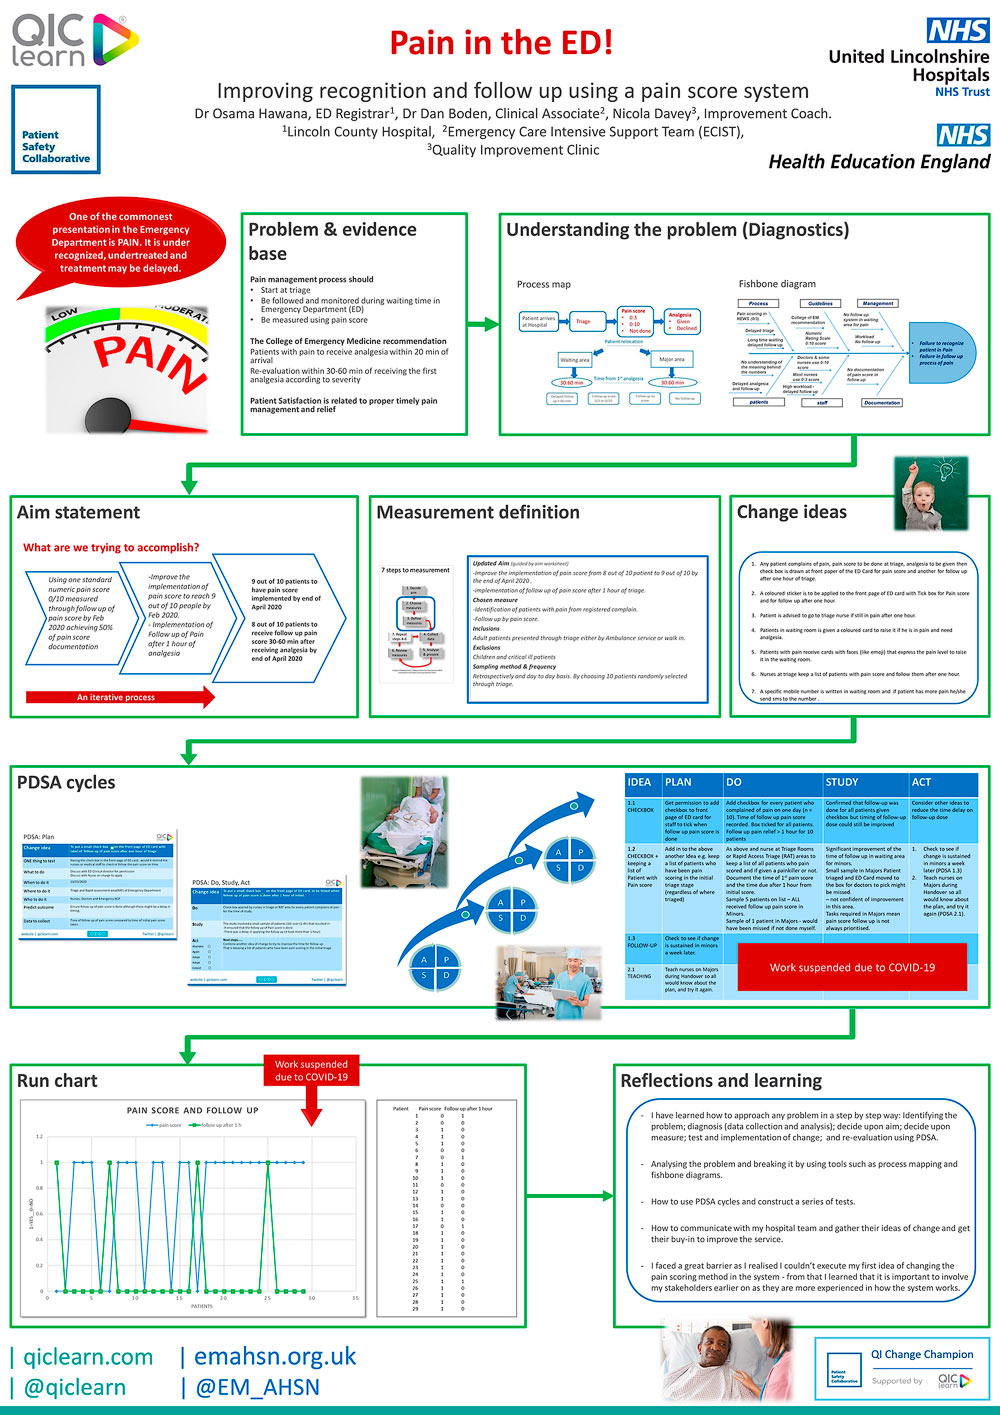 QIClearn poster safety first